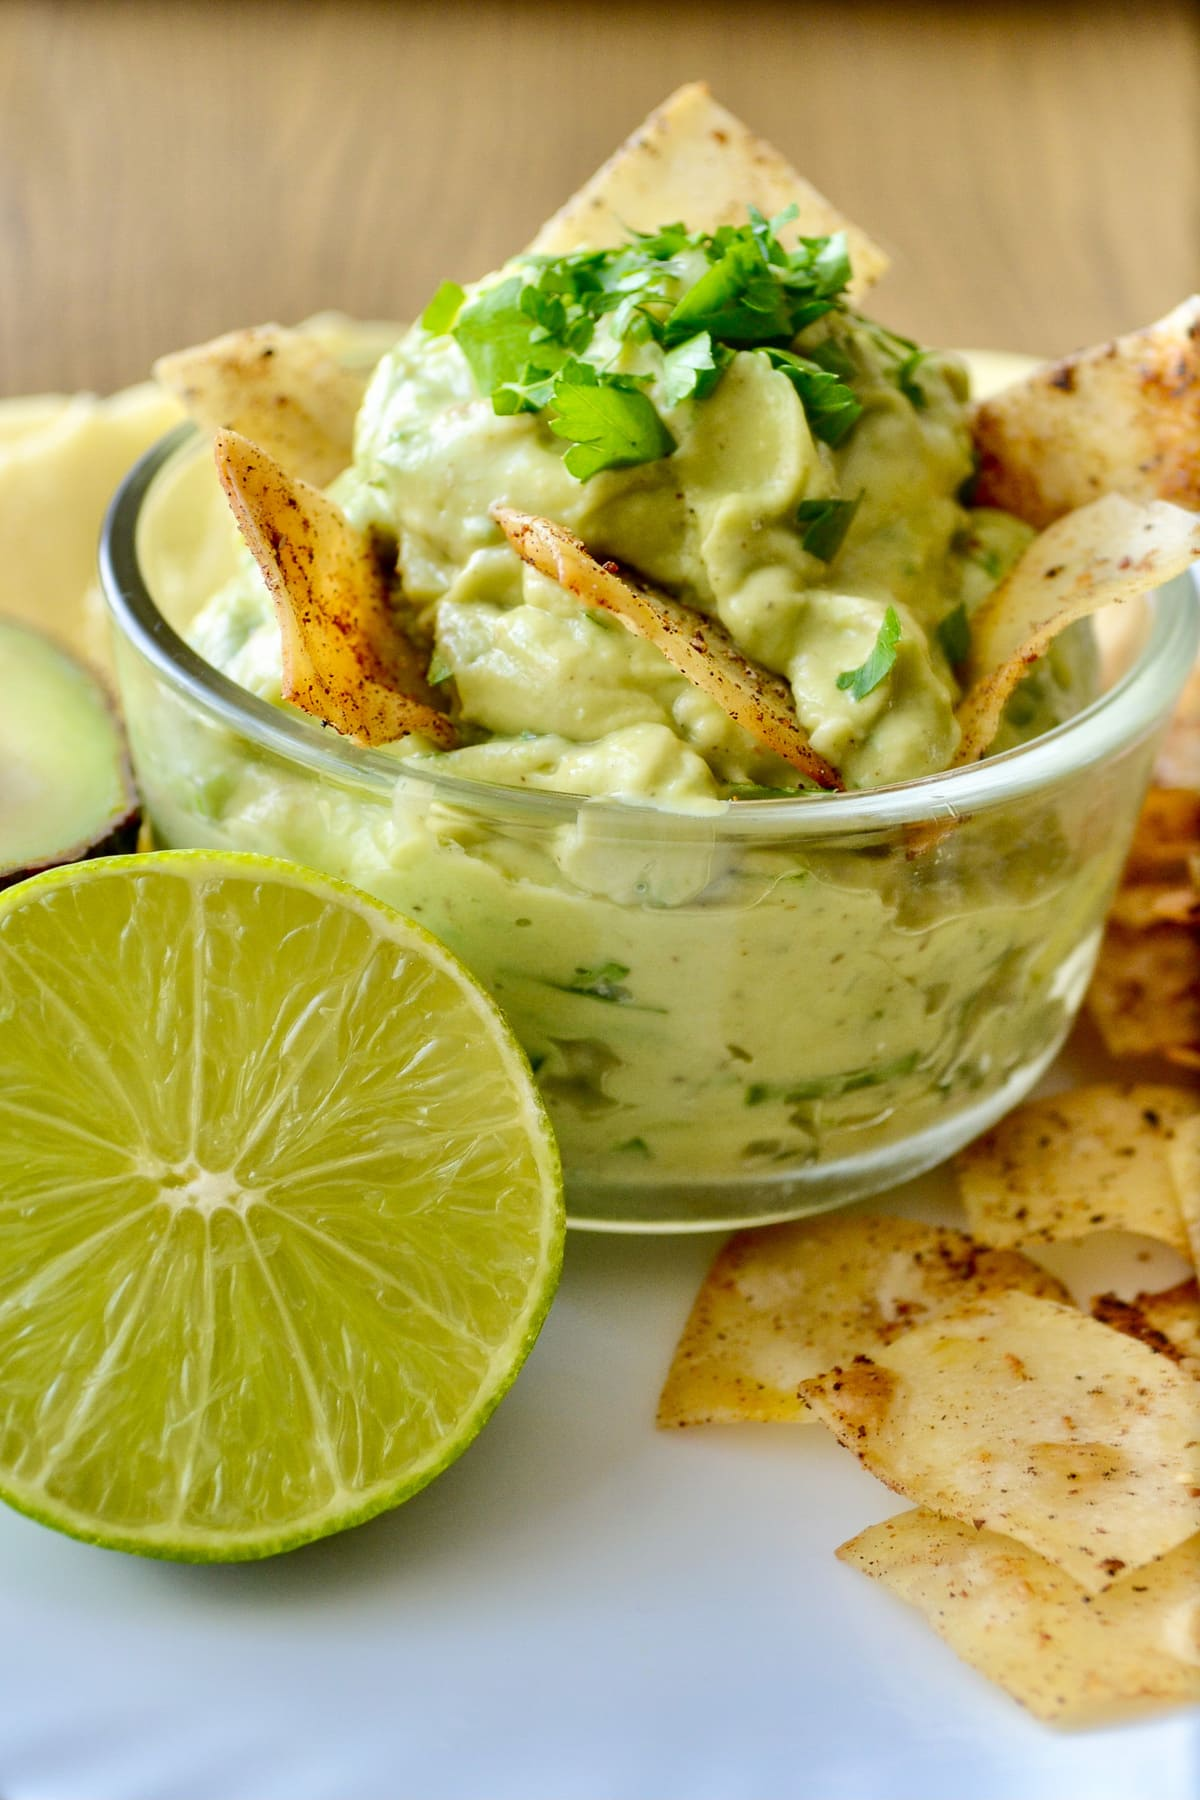 Keto Homemade Guacamole Dip served with chips